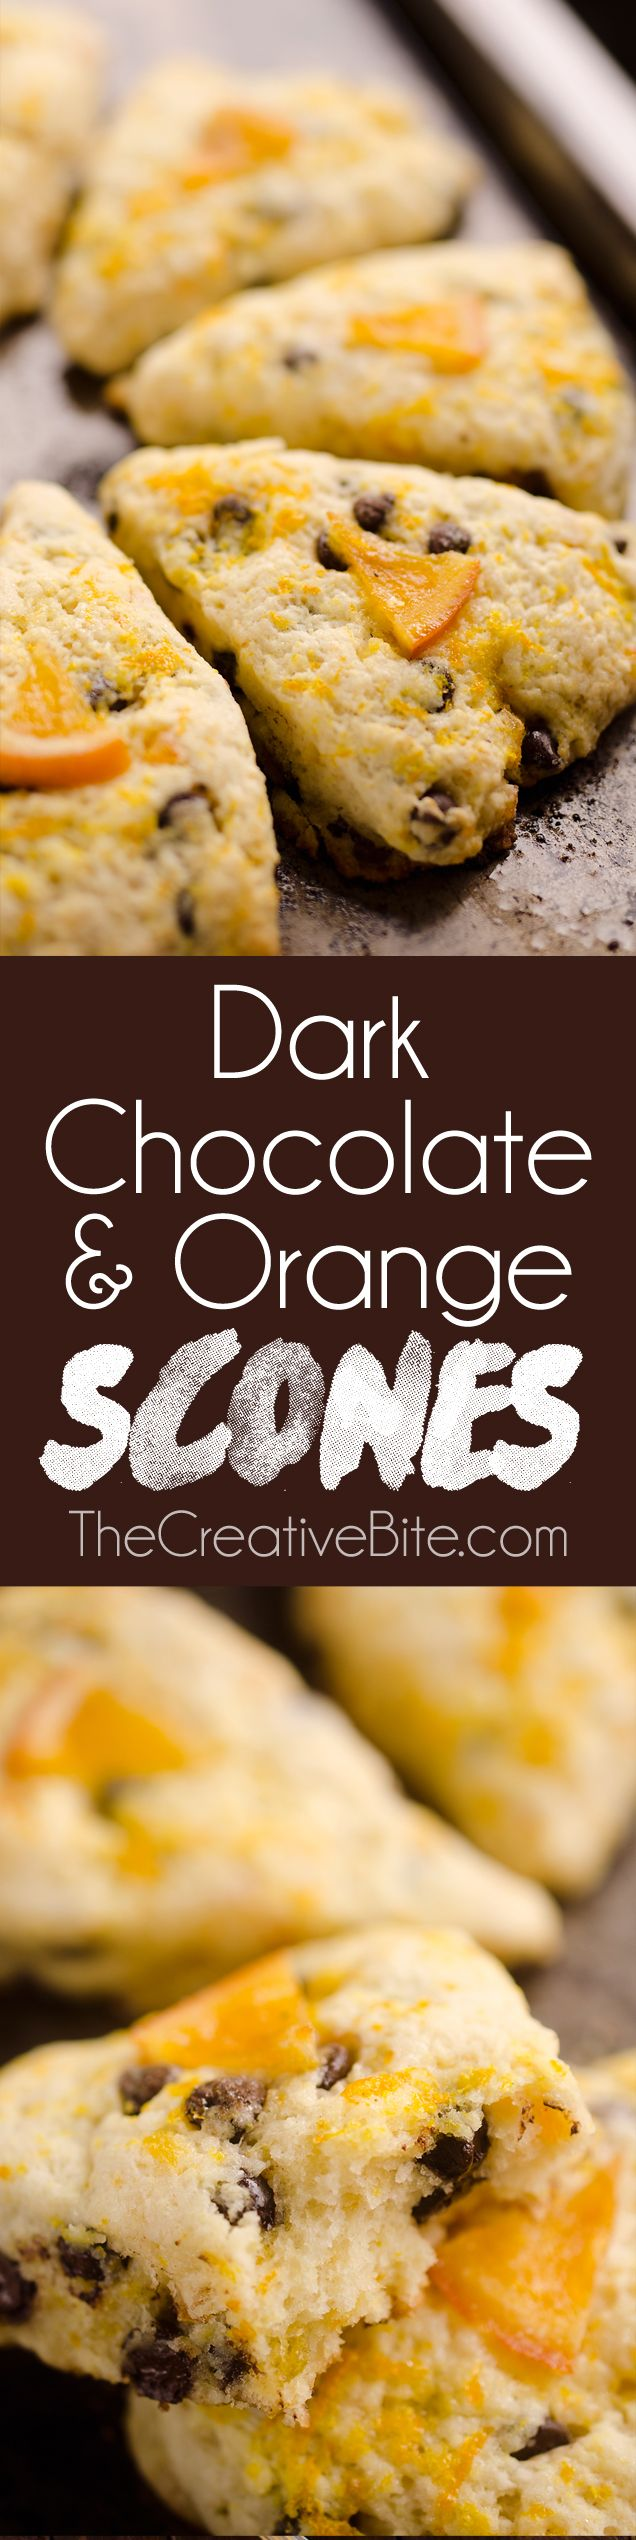 Dark Chocolate & Orange Scones are soft and tender cake-like treats with a bright citrus flavor paired with rich dark chocolate. Whether you serve them for breakfast, brunch or dessert, they are sure to be a hit! #Orange #Scones #Brunch